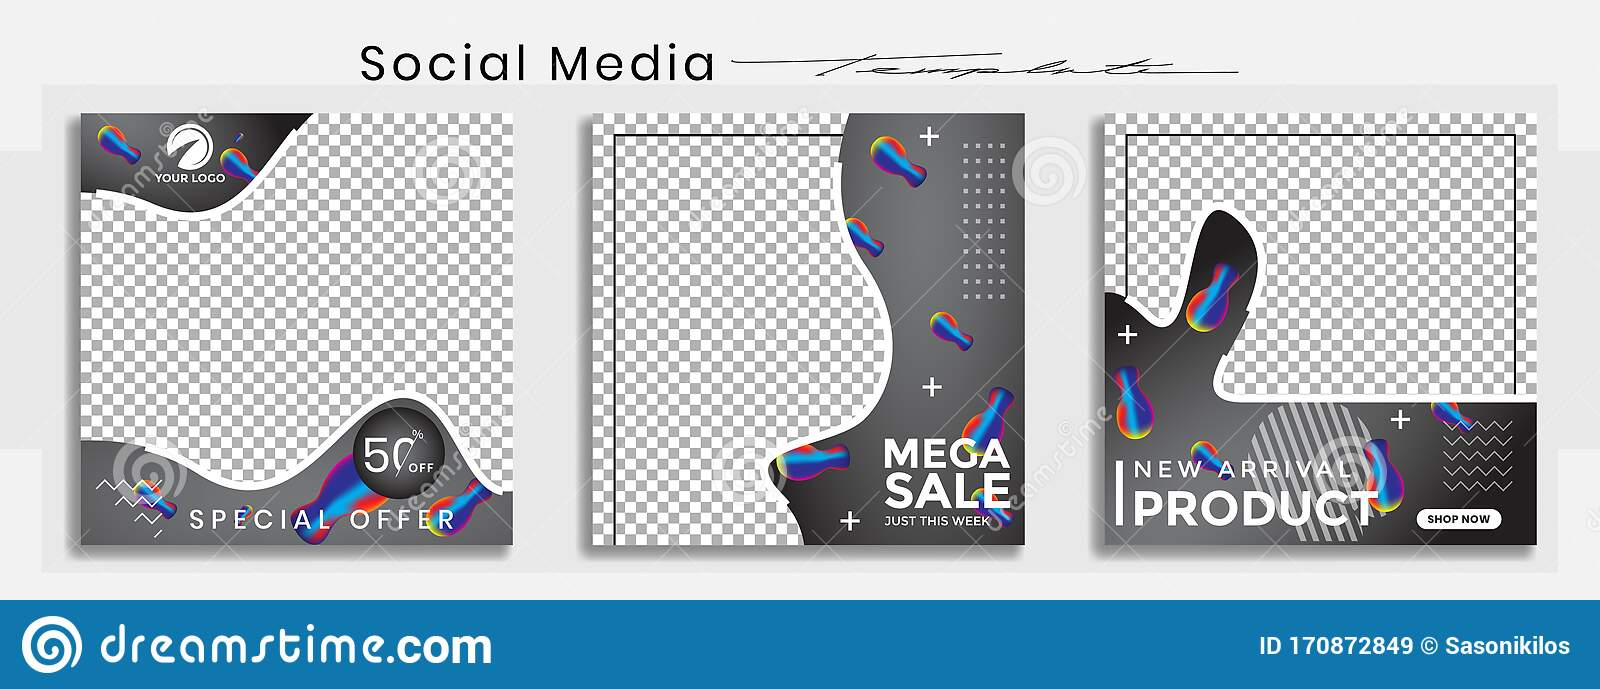 Editable Social Media Post Templates Facebook Instagram Story Collections And Post Frame Layout Designs Mockup For Marketing Stock Vector Illustration Of Fashion Highlight 170872849